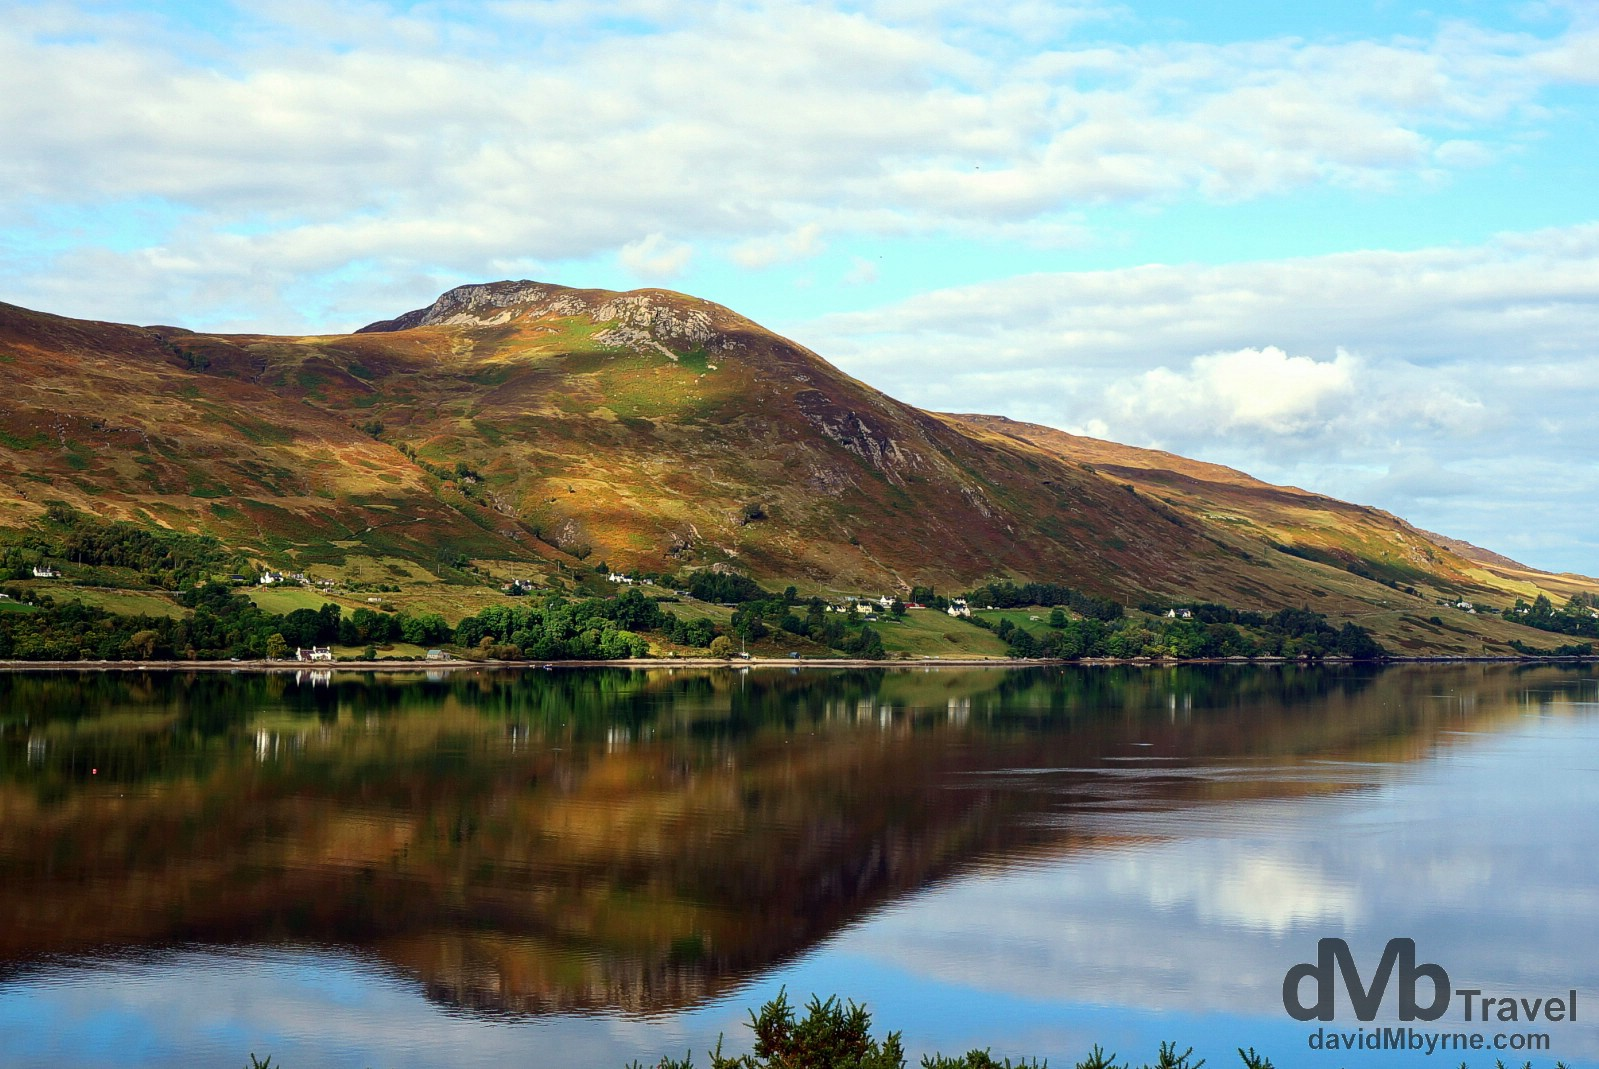 Reflections of the western shore of Lock Broom, Highlands, Scotland. September 16, 2014.